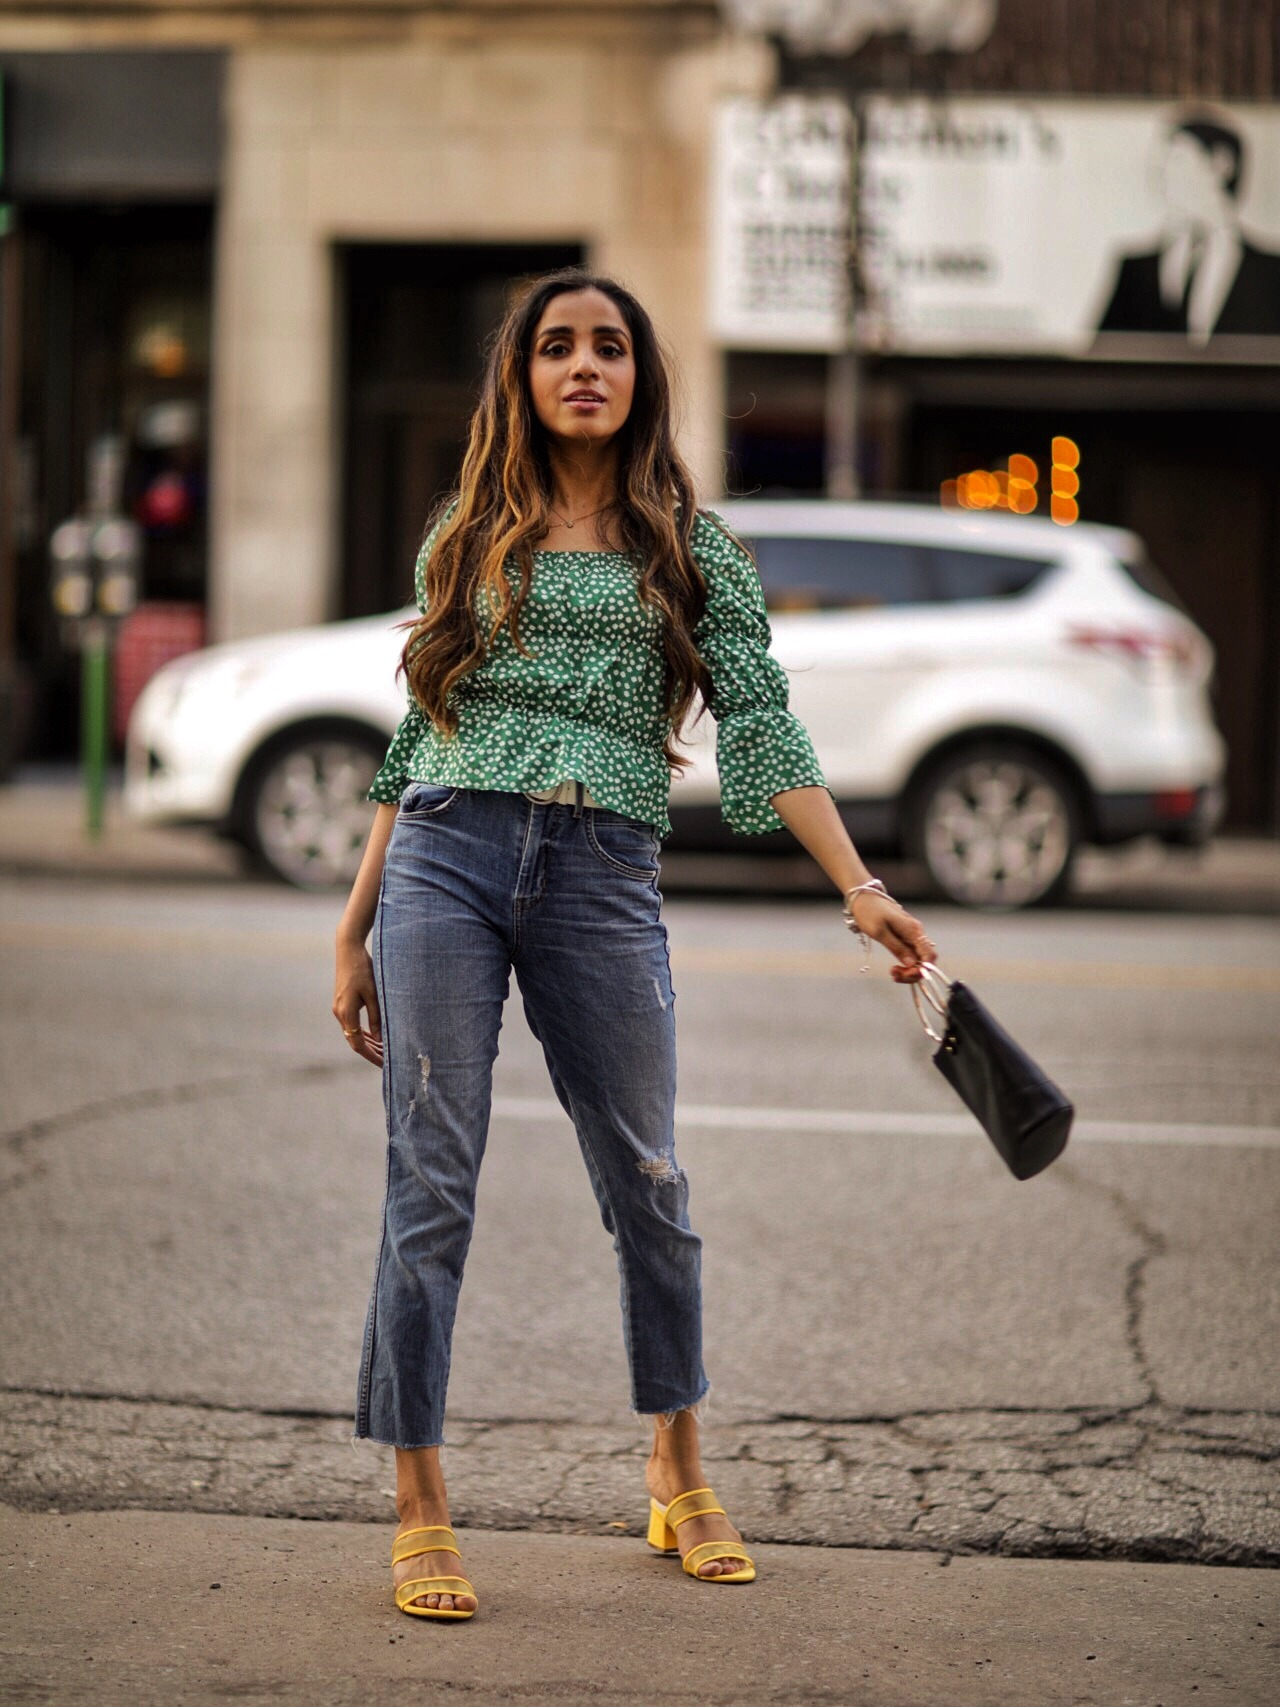 Puffy Sleeves Everyone's Raving About Shein Floral Print Square Neck Blouse Faiza Inam SincerelyHumble Summer Fashion Street Styel 1